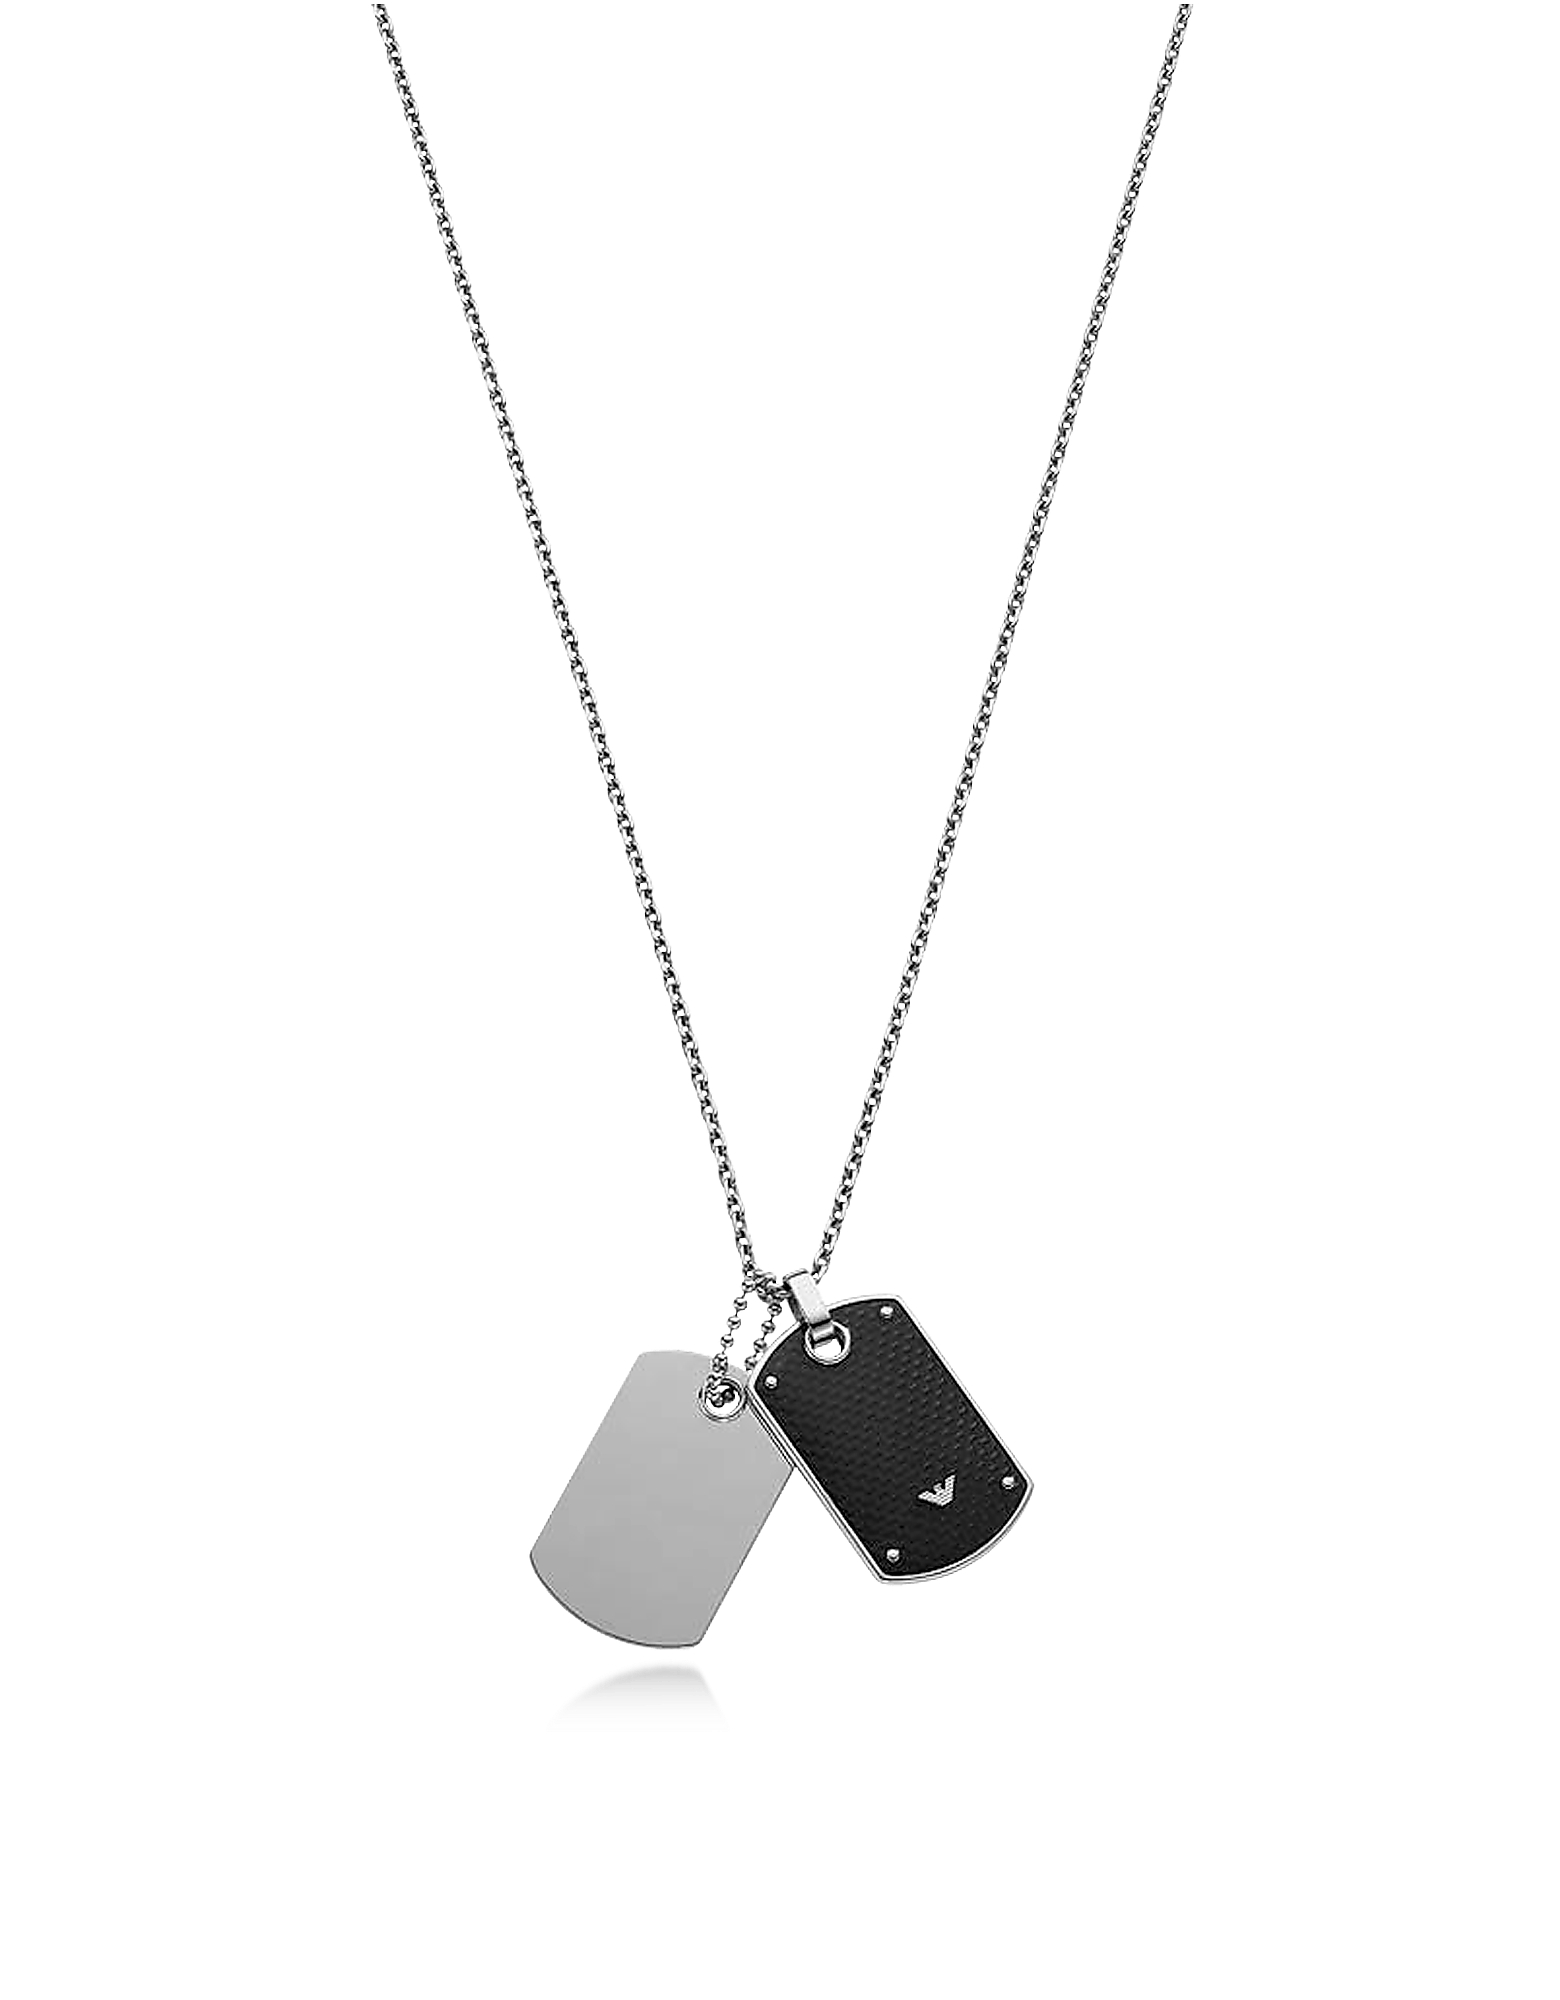 Iconic Stainless Steel And Carbon Fiber Print Men's Necklace от Forzieri.com INT